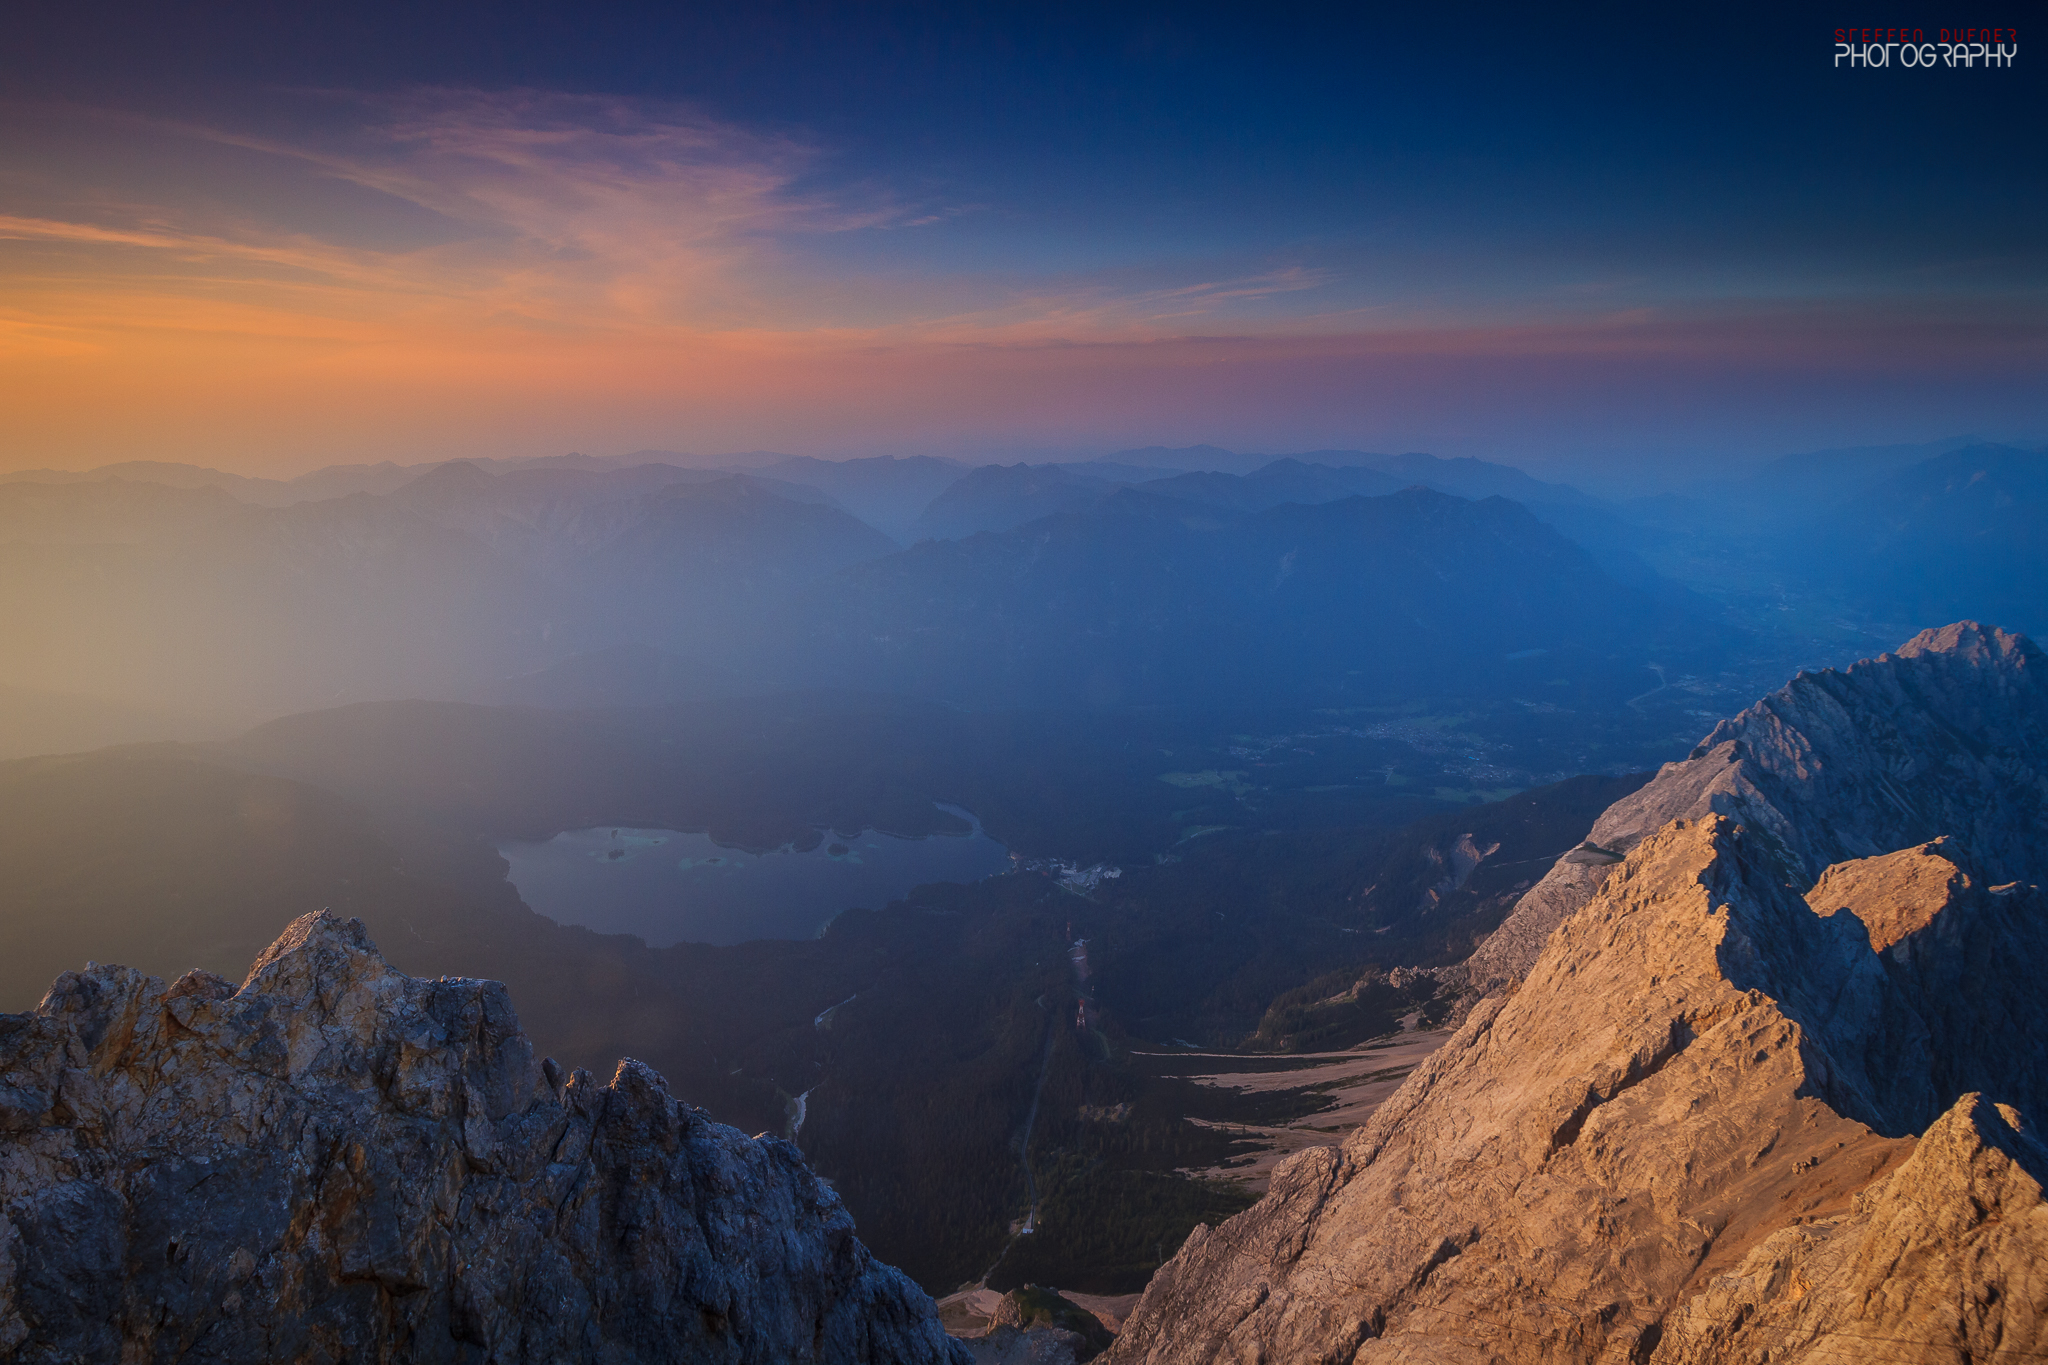 Zugspitze Sunset - View of the Eibsee, Austria